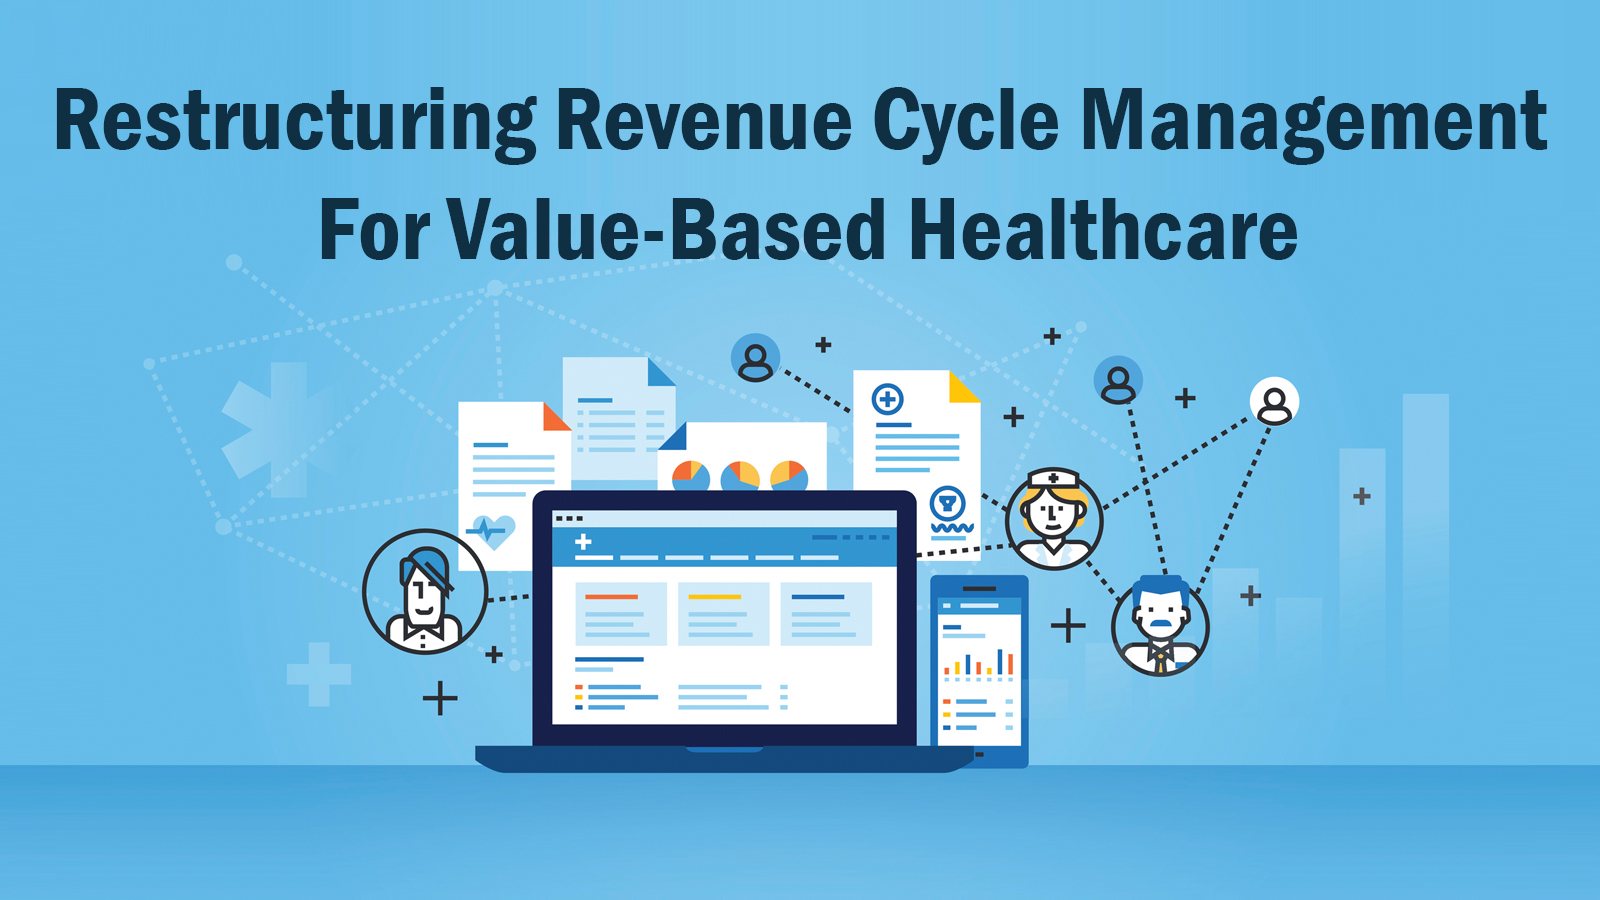 Restructuring Revenue Cycle Management For Value-Based Healthcare